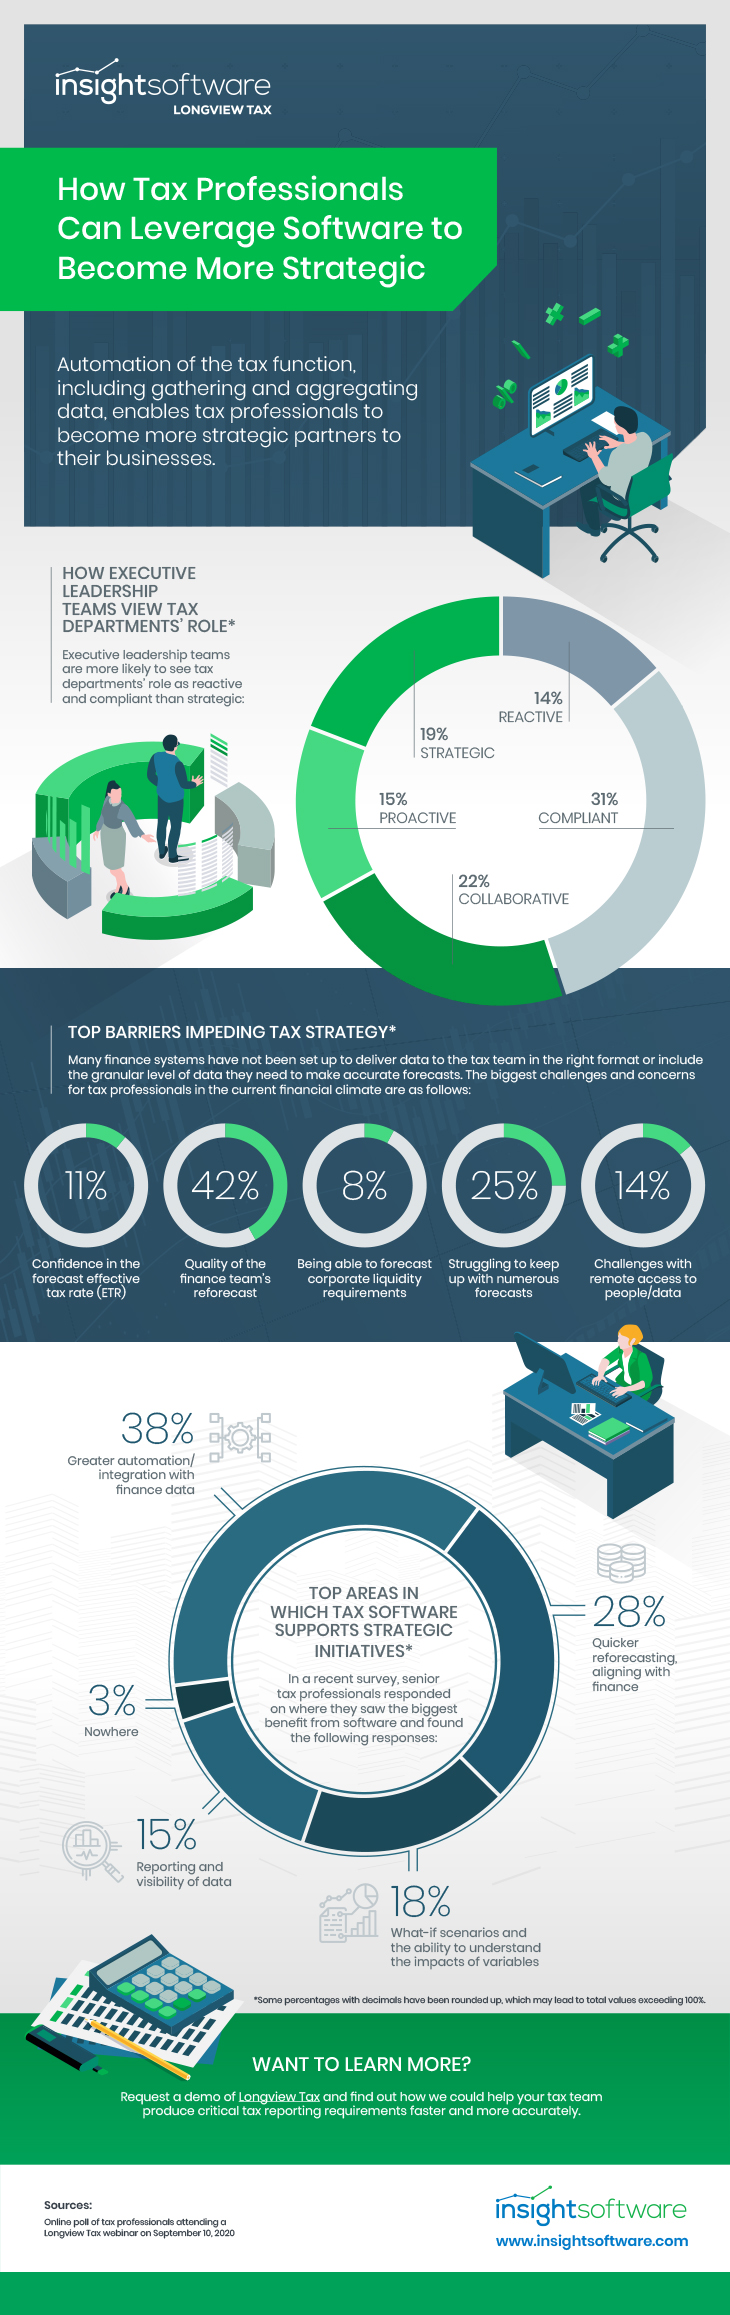 11 2020 Tax Infographic Enhancing Value For Tax Teams